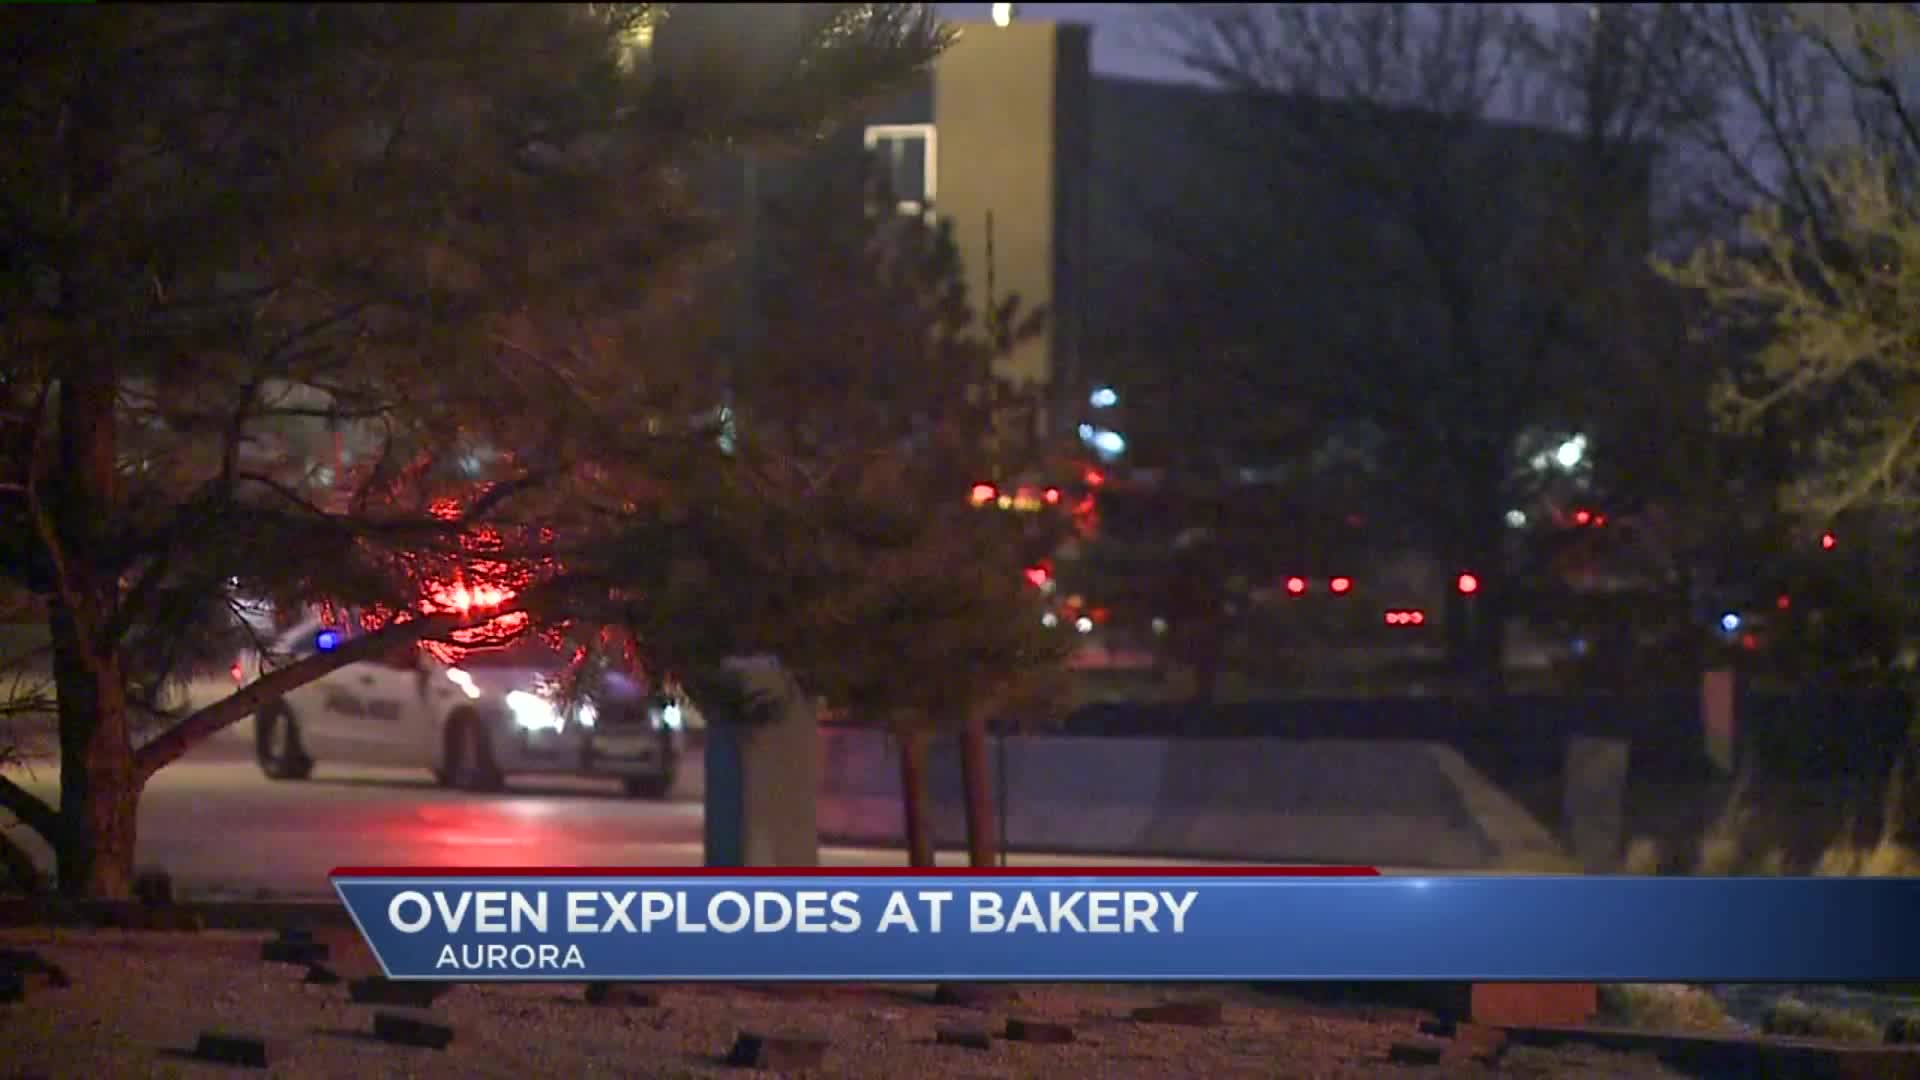 2 Injured After Oven Explodes At Bakery Warehouse